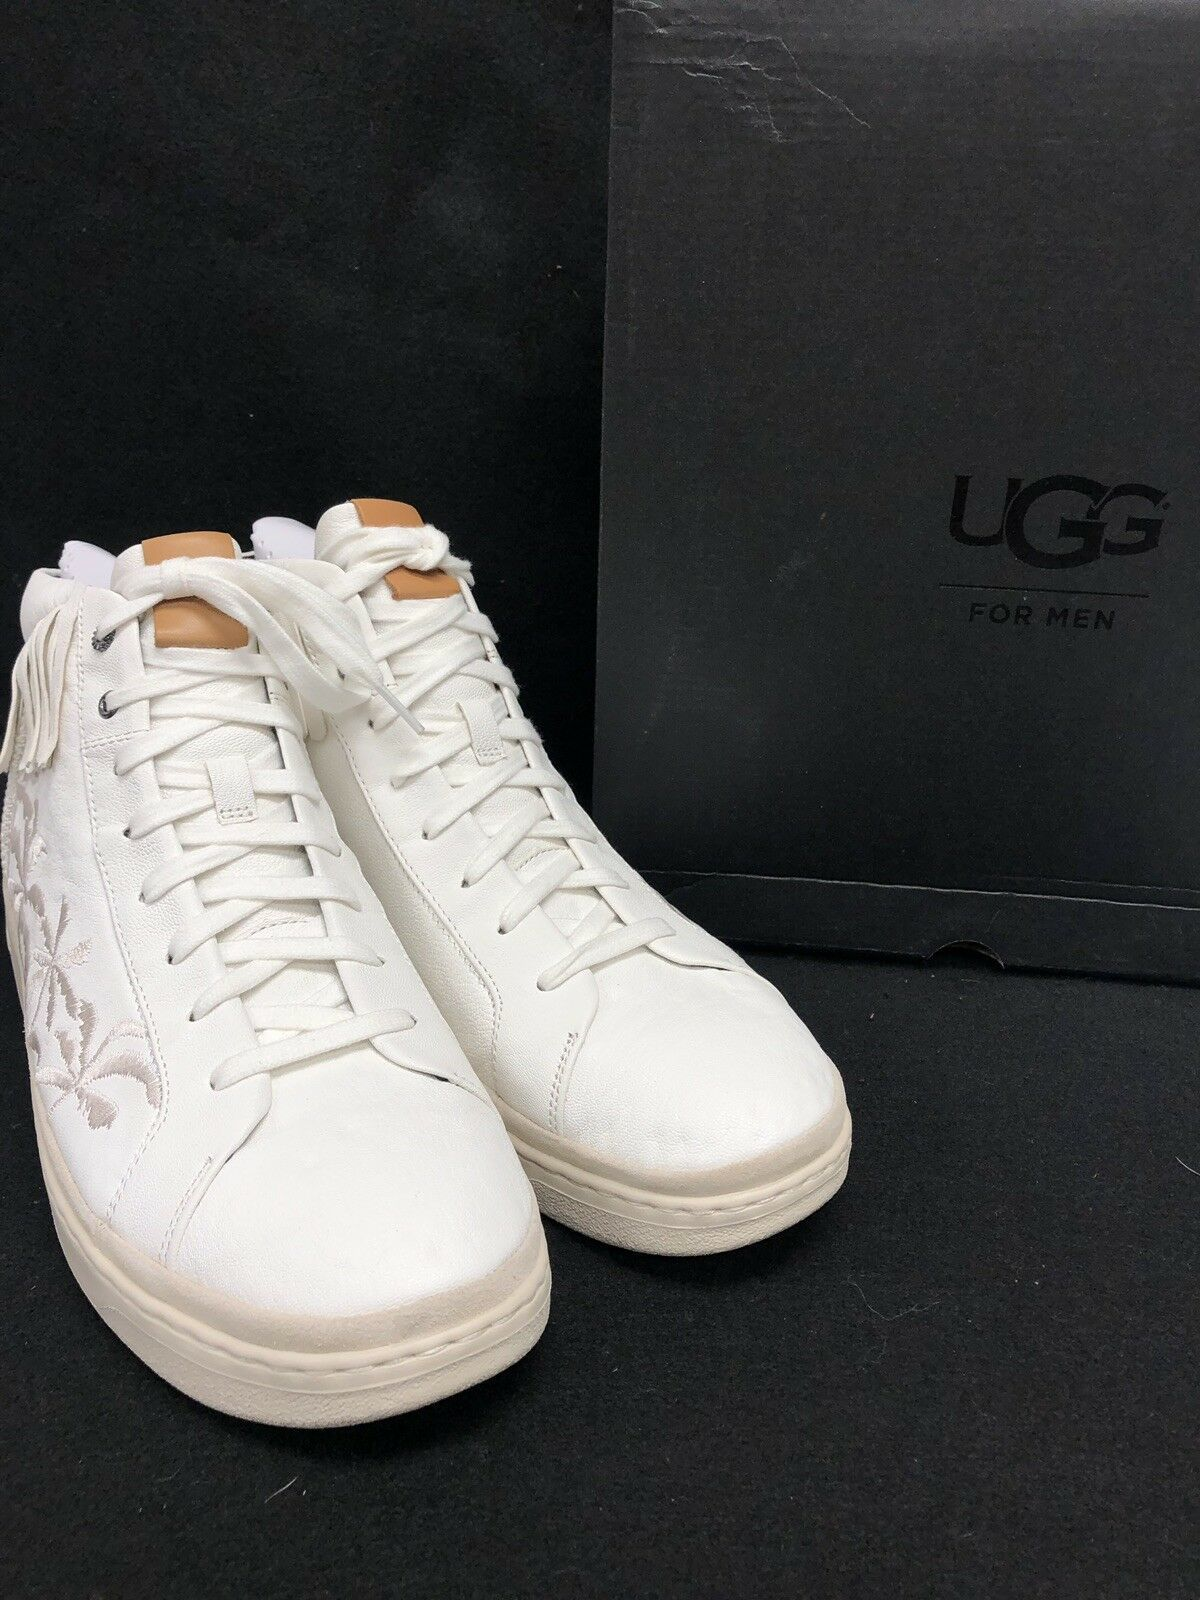 Ugg Australia Men's Cali Lace High Fringe Palms Sneakers Leather Lace Up 1020138